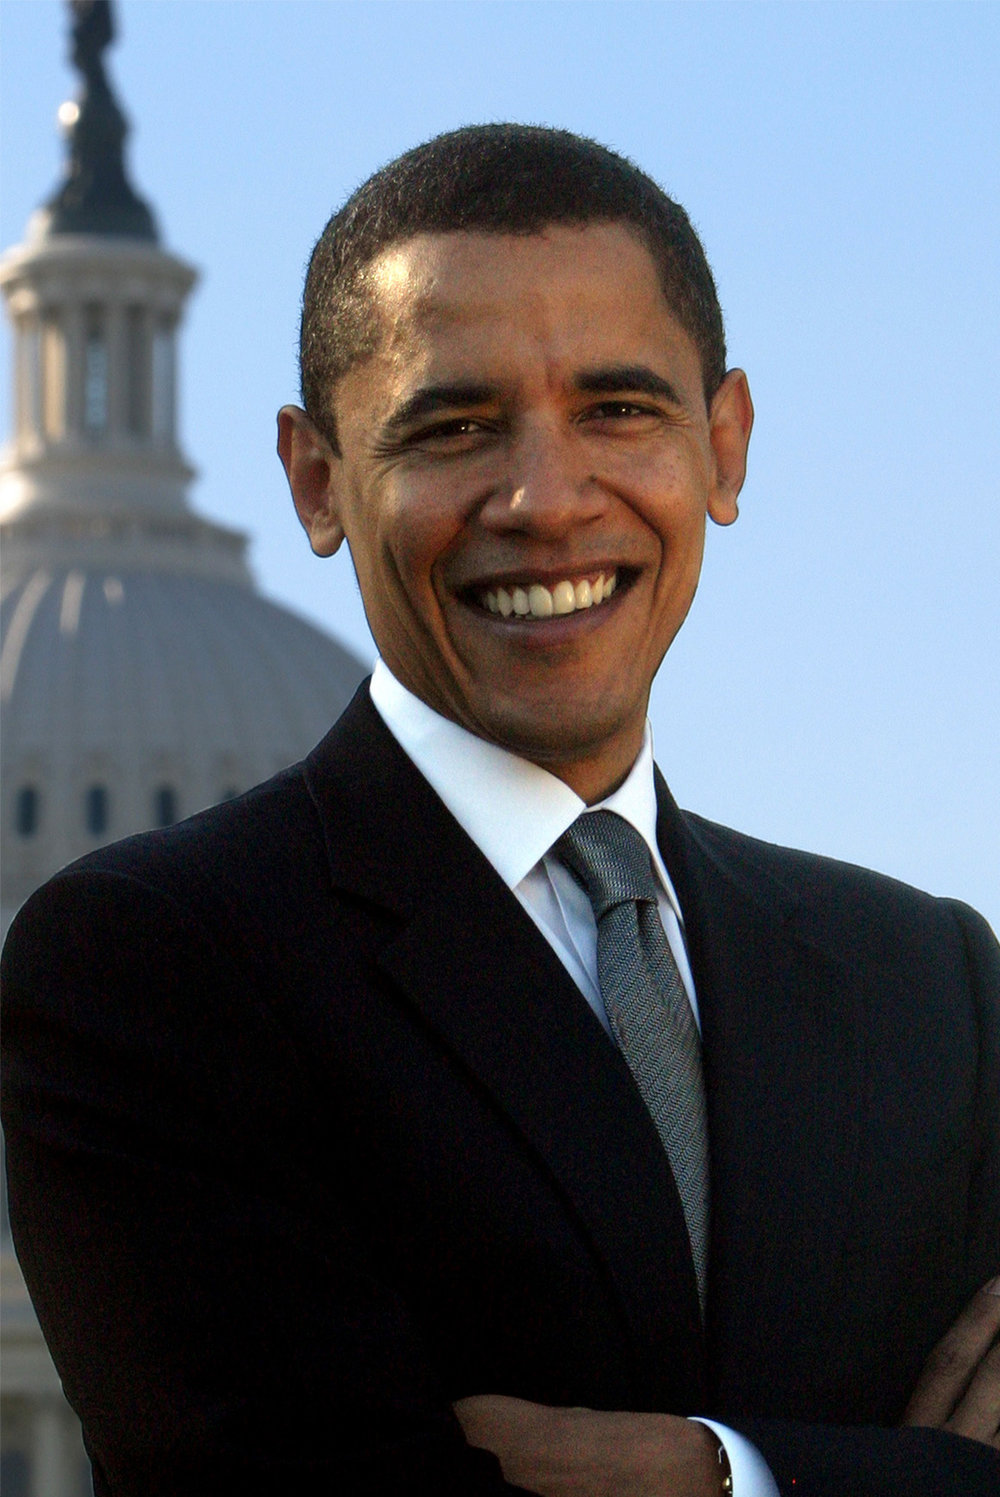 Copy of Barack Obama II